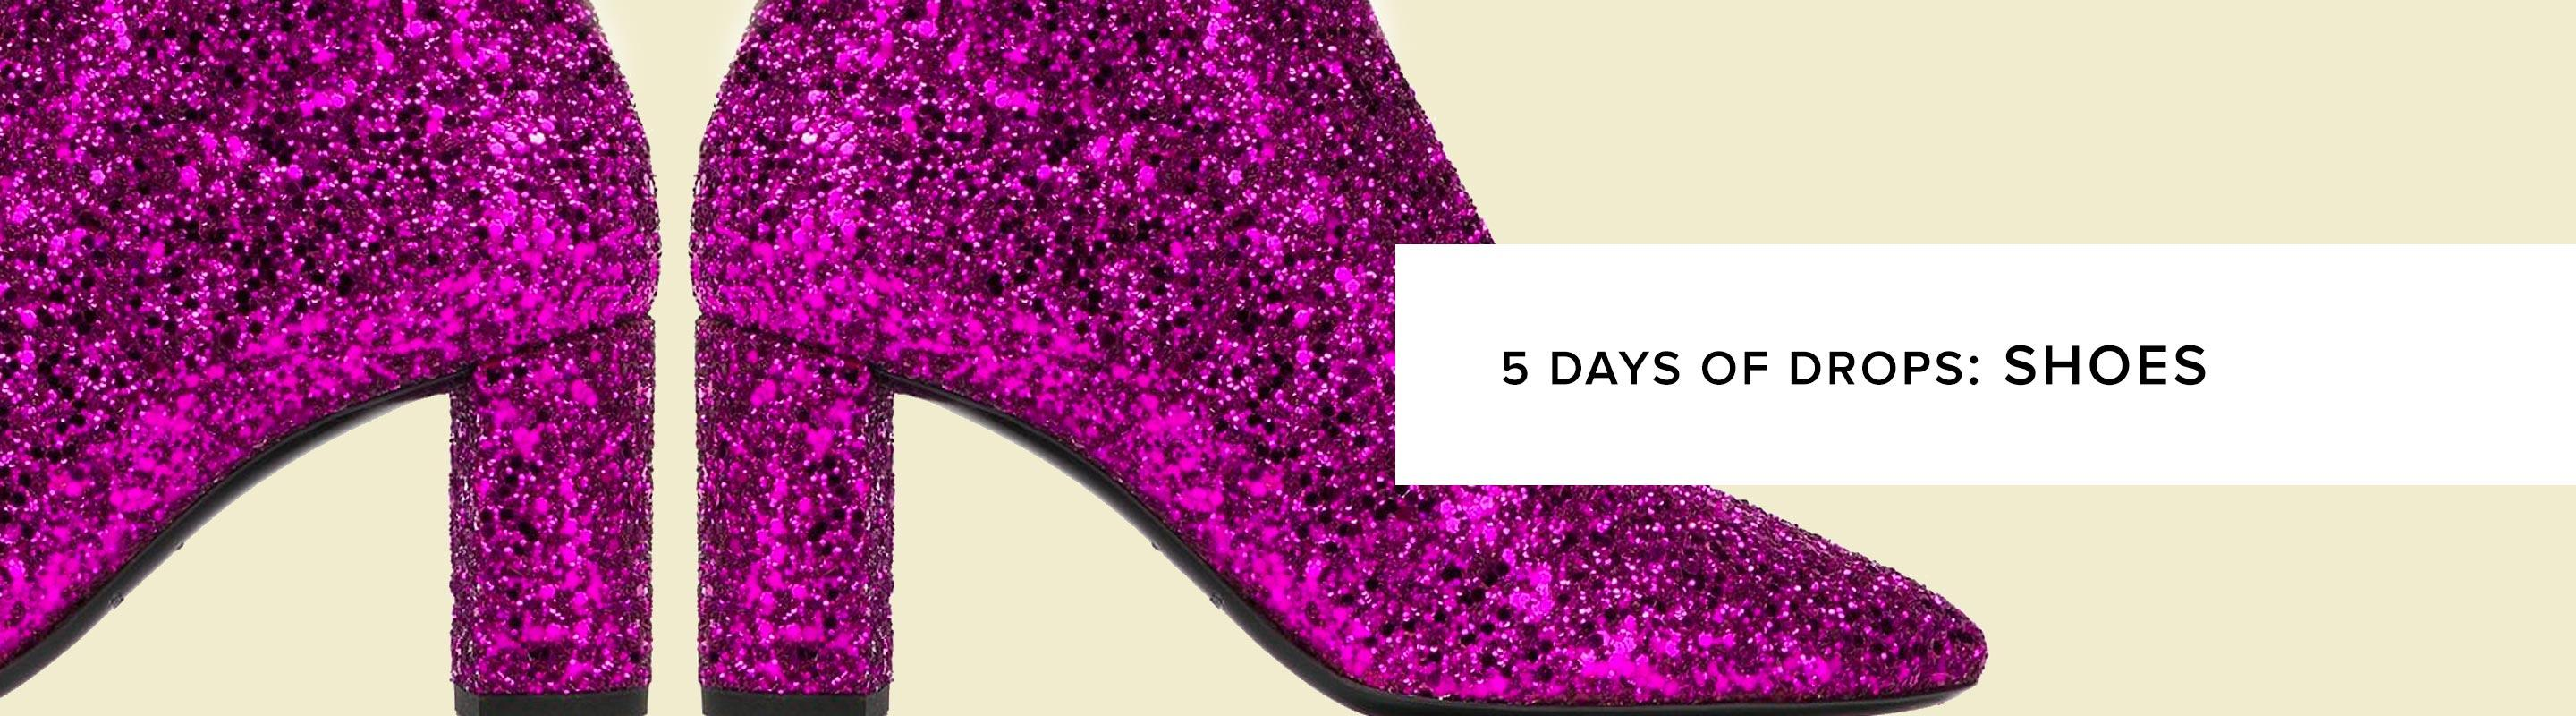 5 Days Of Drops: Chic Shoes